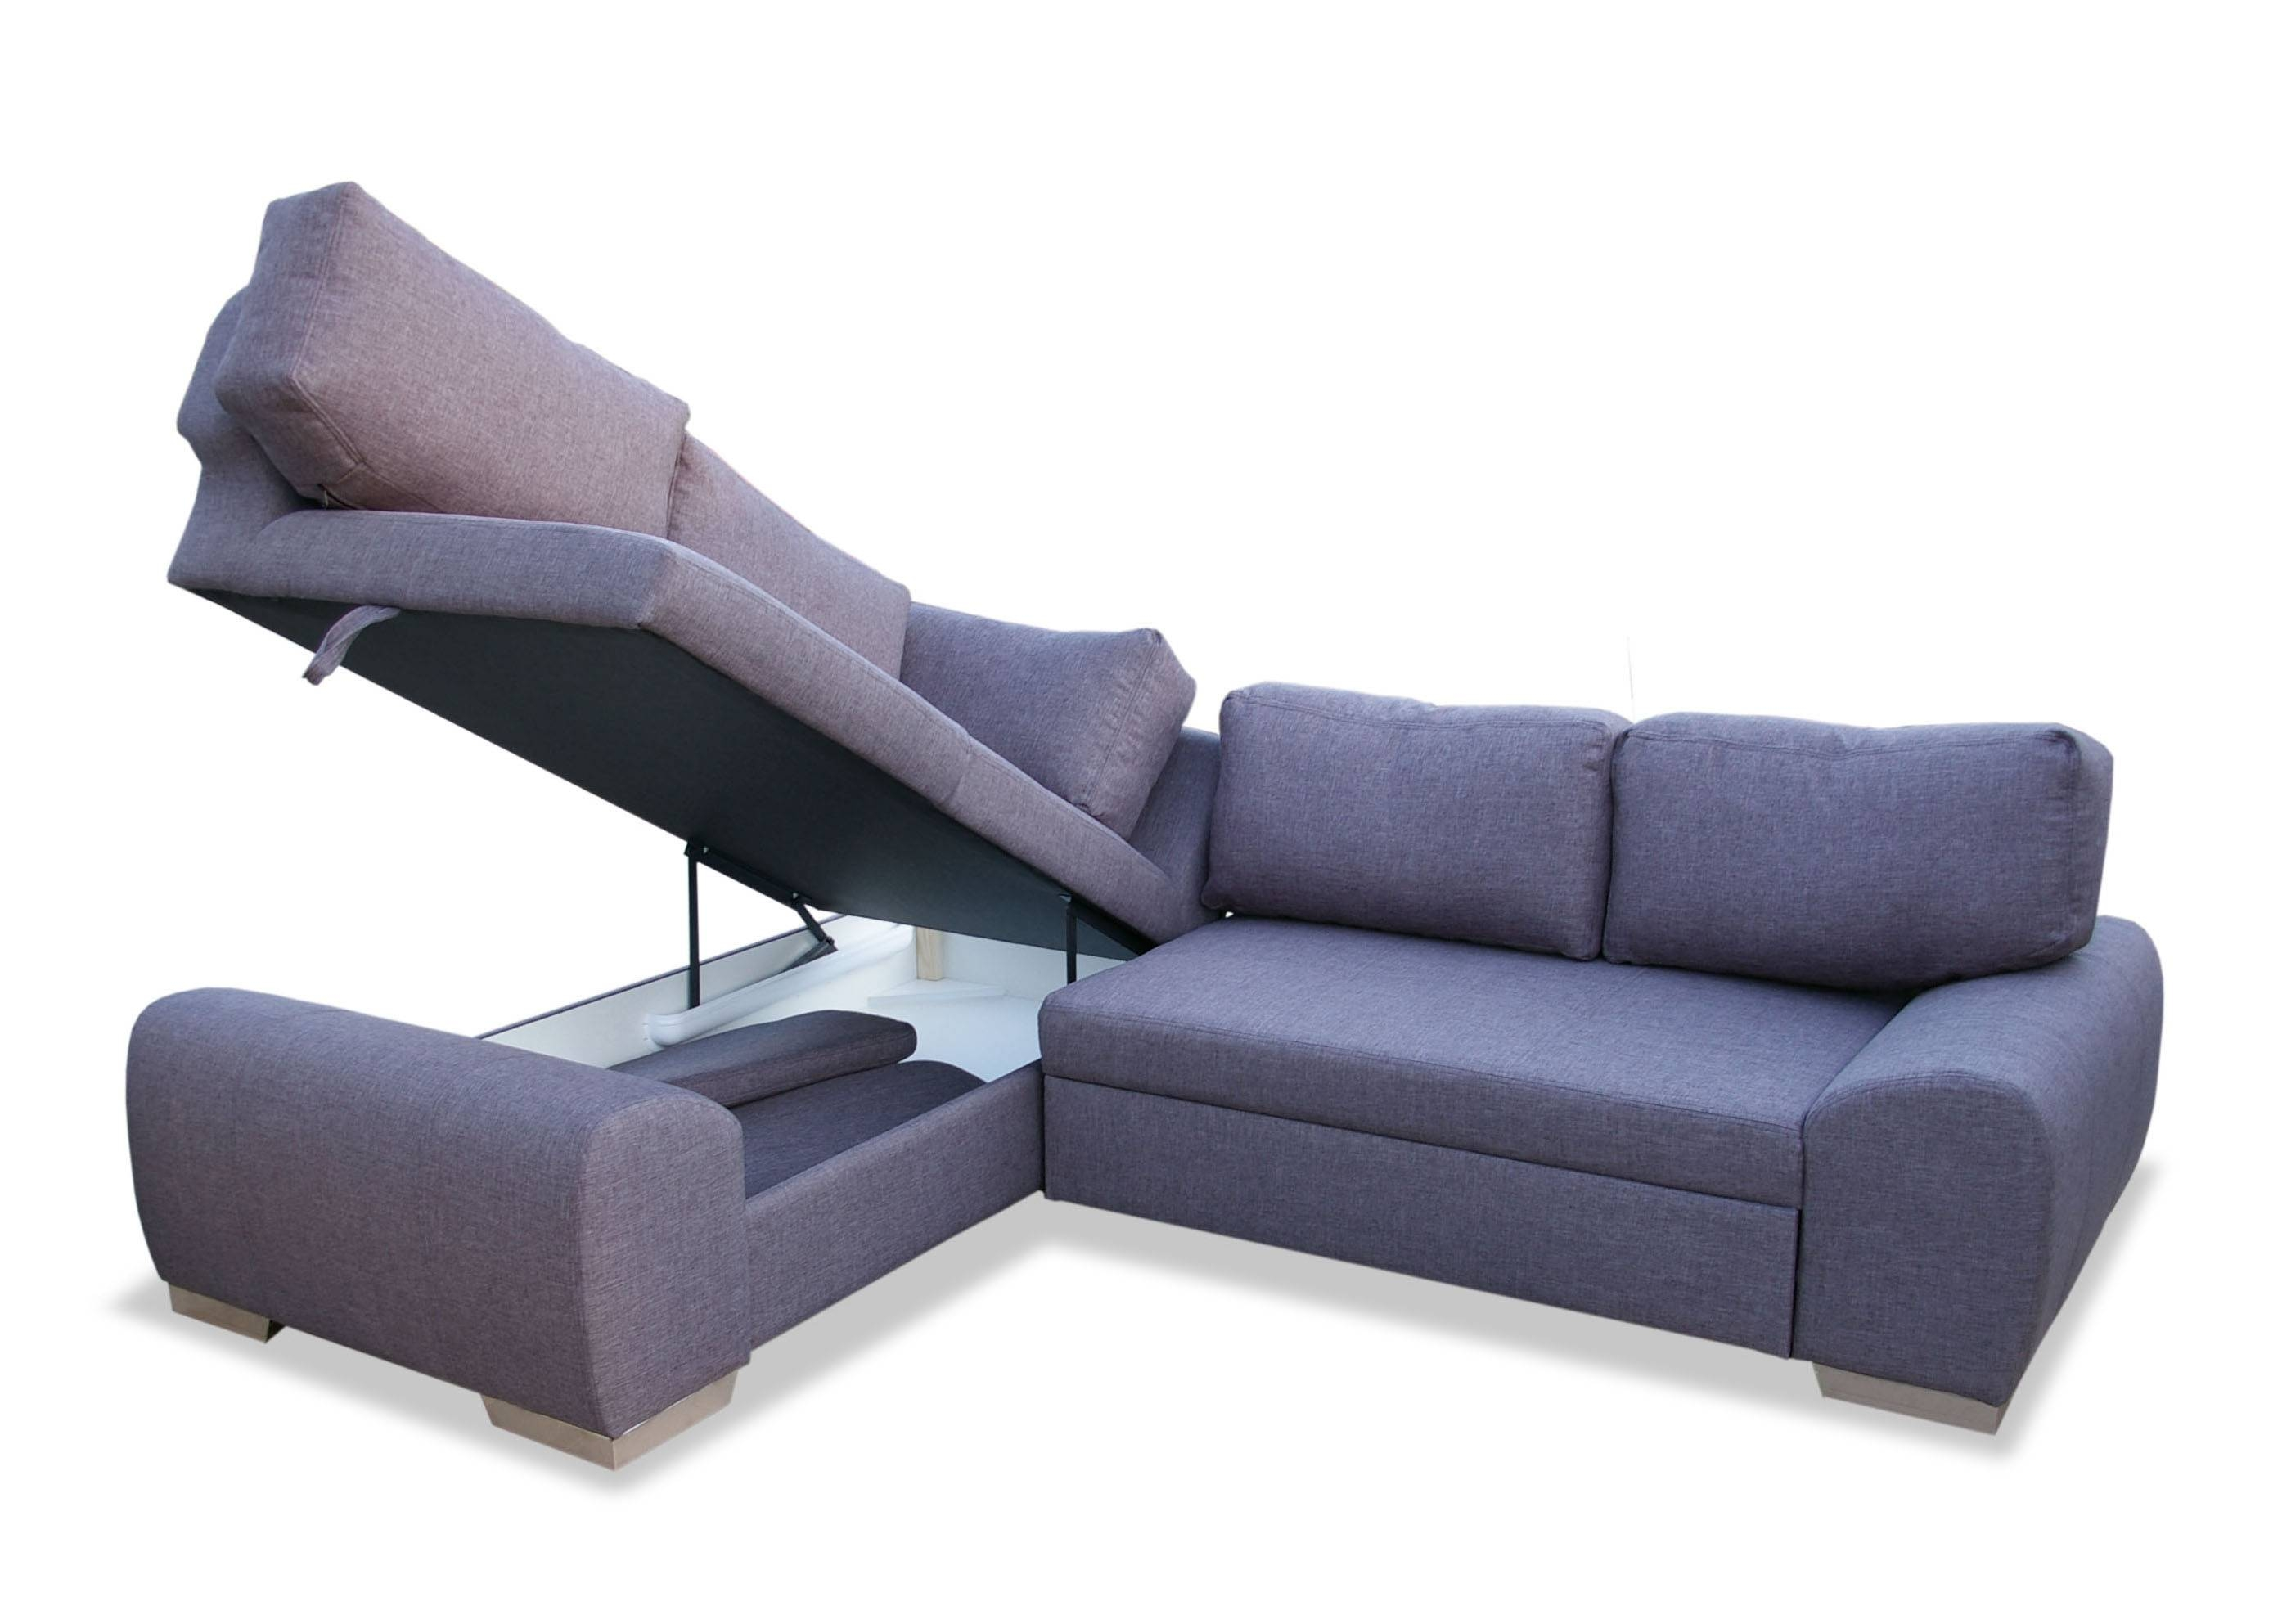 Milan Corner Sofa Bed With Storage Right Hand Grey - S3Net throughout Sofa Beds With Storages (Image 20 of 30)